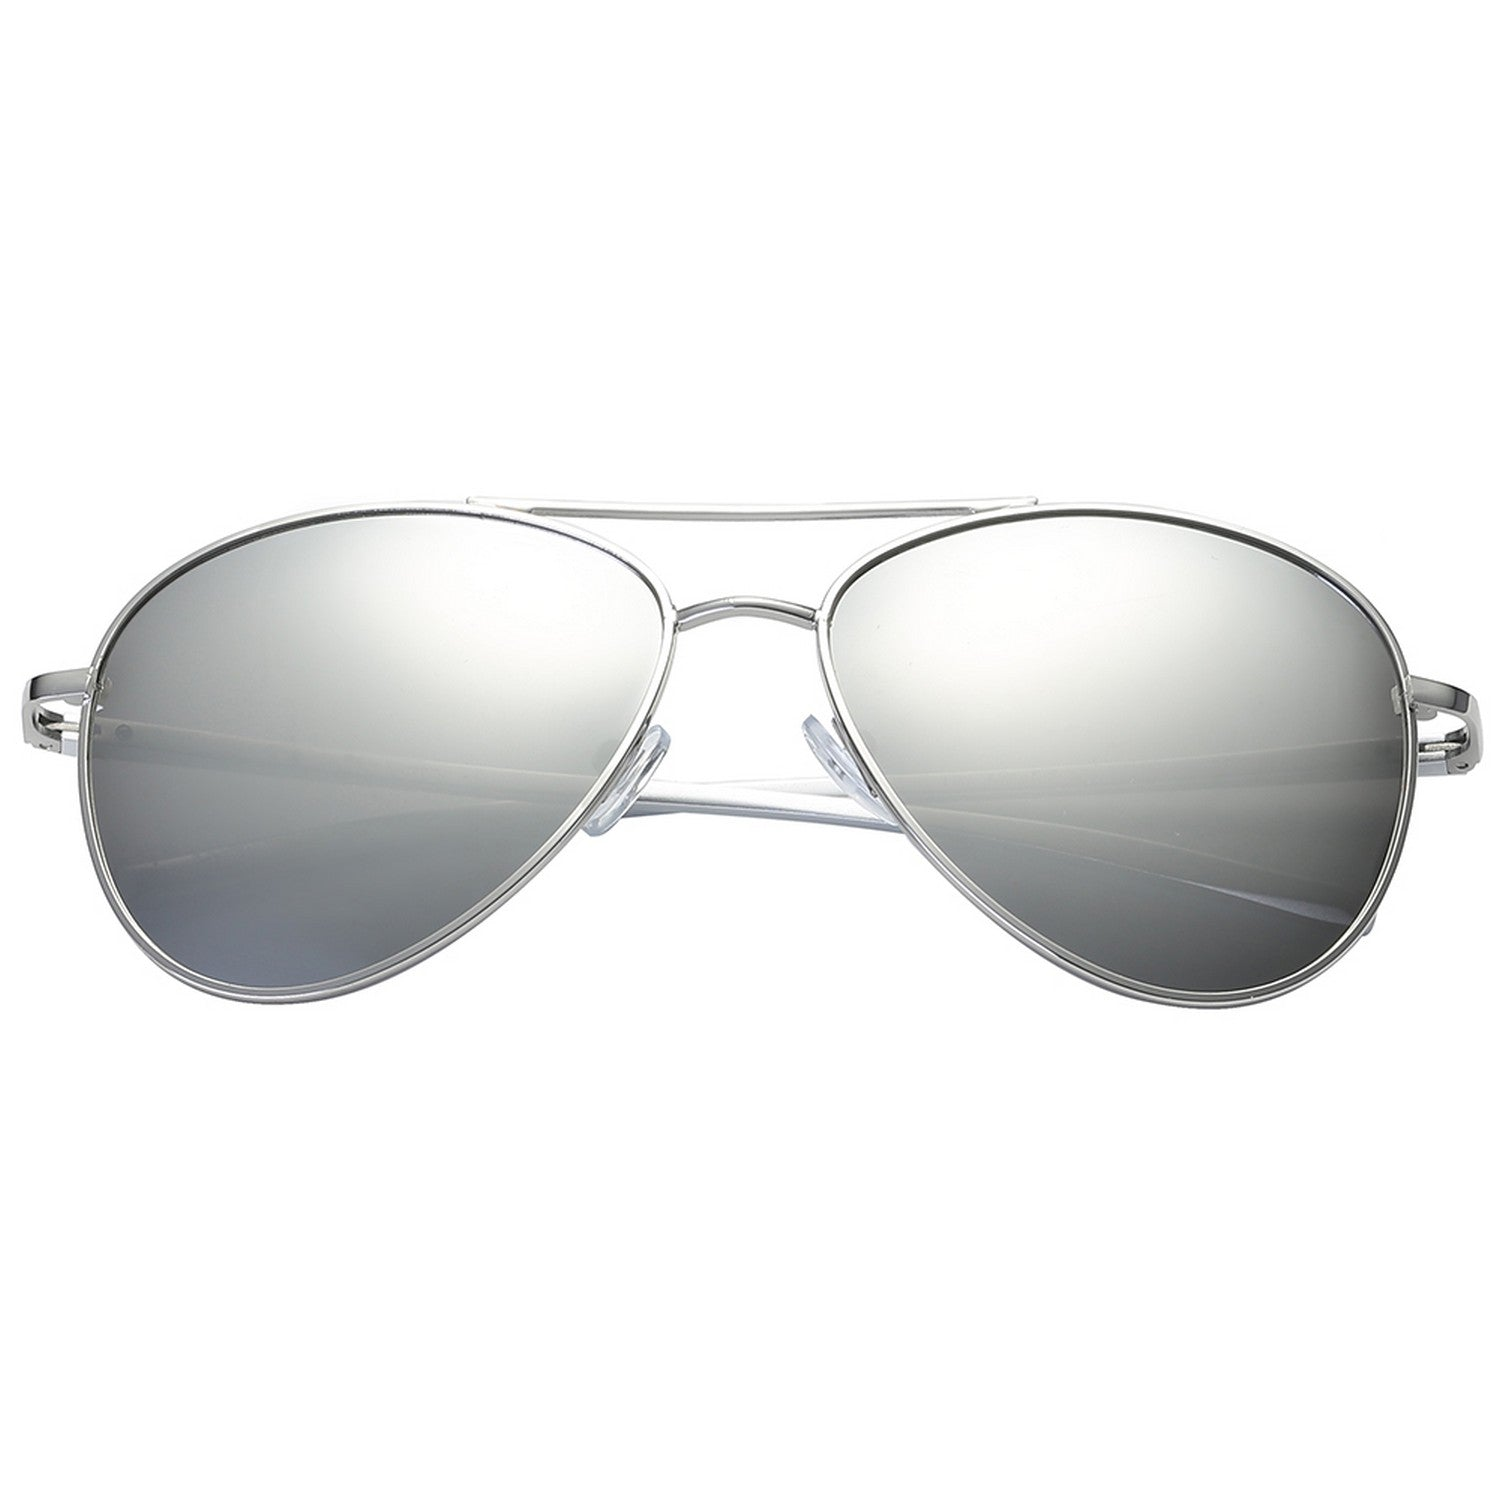 Polarspex Polarized Aviator Style Sunglasses with Aluminum Silver Frames and Polarized Ice Tech Lenses for Men and Women